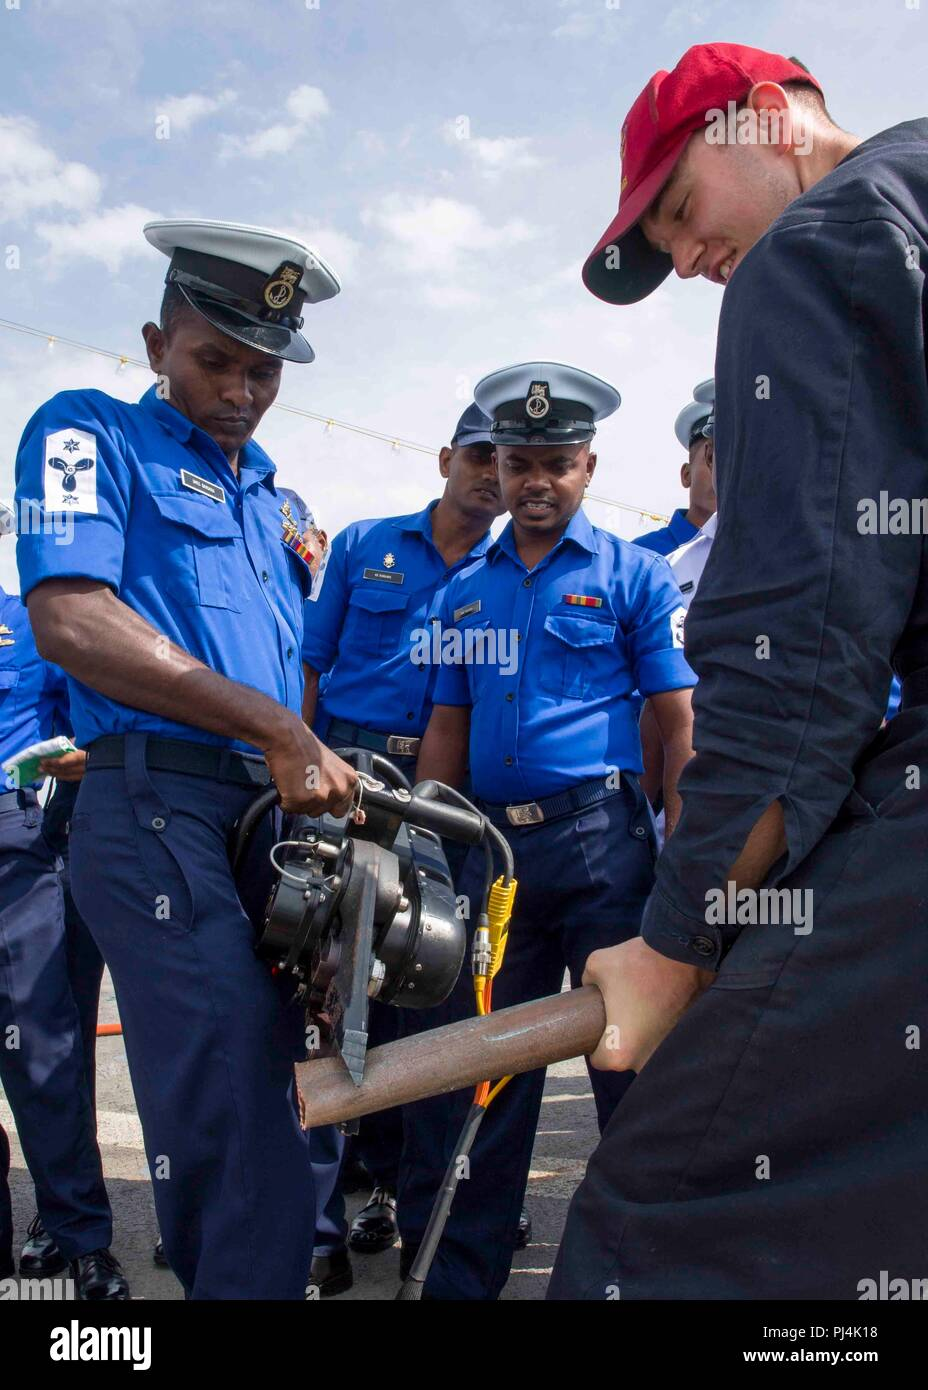 180826-N-PH222-0037 TRINCOMALEE, SRI LANKA (August 26, 2018) Damage Controlman 3rd Class Wayne L. Batten, from Elizabeth W.Va., conducts training on damage control equipment with Sri Lanka navy sailors on the flight deck of San Antonio-class amphibious transport dock USS Anchorage (LPD 23) during a regularly scheduled deployment of the Essex Amphibious Ready Group (ARG) and the 13th Marine Expeditionary Unit (MEU). Anchorage and the embarked Marines of the 13th MEU are conducting a theater security cooperation exercise with the Sri Lankan navy and Marines. Part of a growing U.S.-Sri Lanka nava - Stock Image